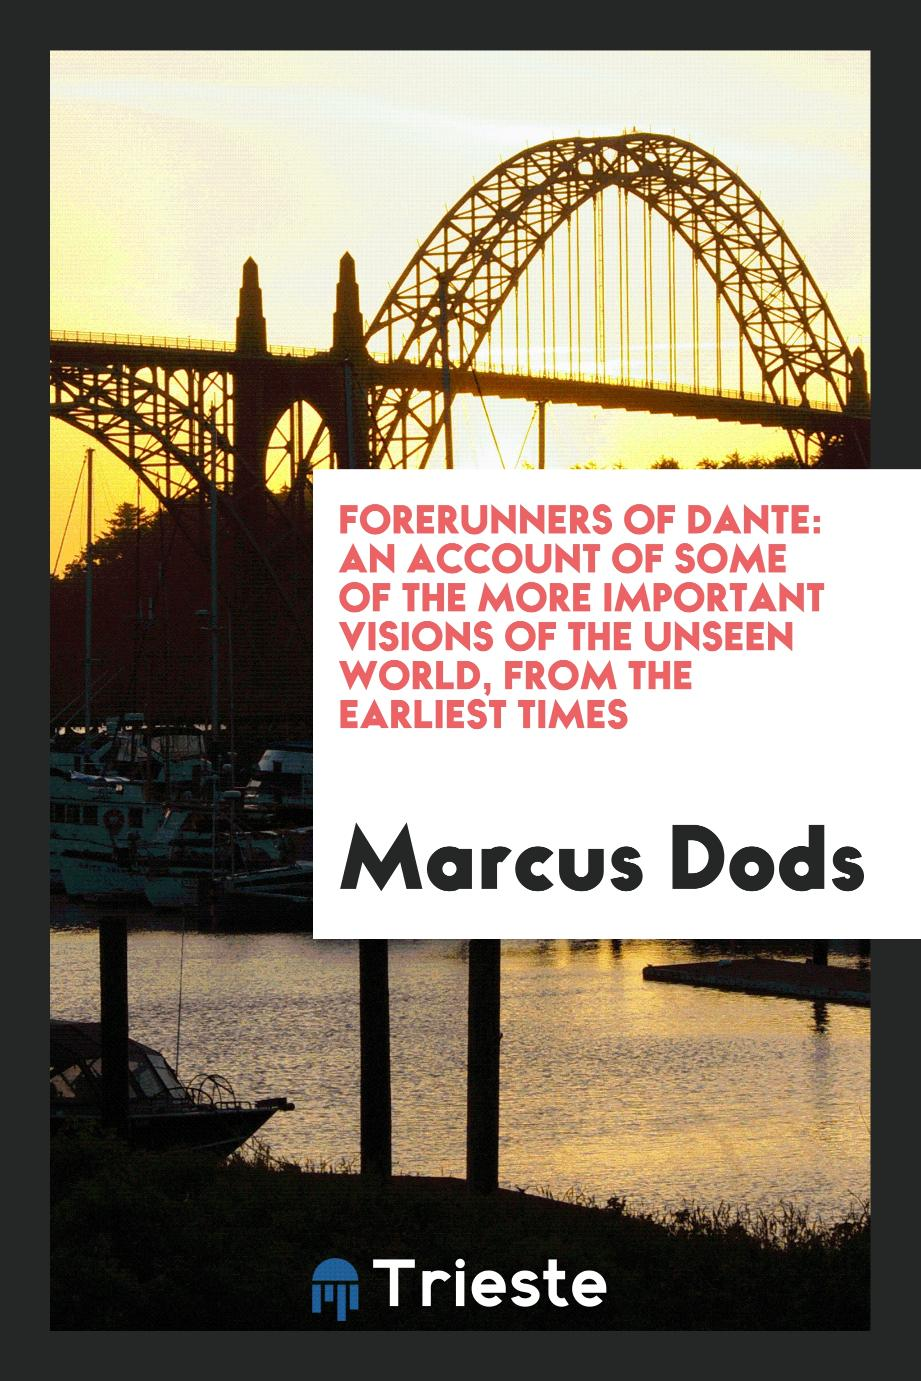 Forerunners of Dante: An Account of Some of the More Important Visions of the Unseen World, from the Earliest Times